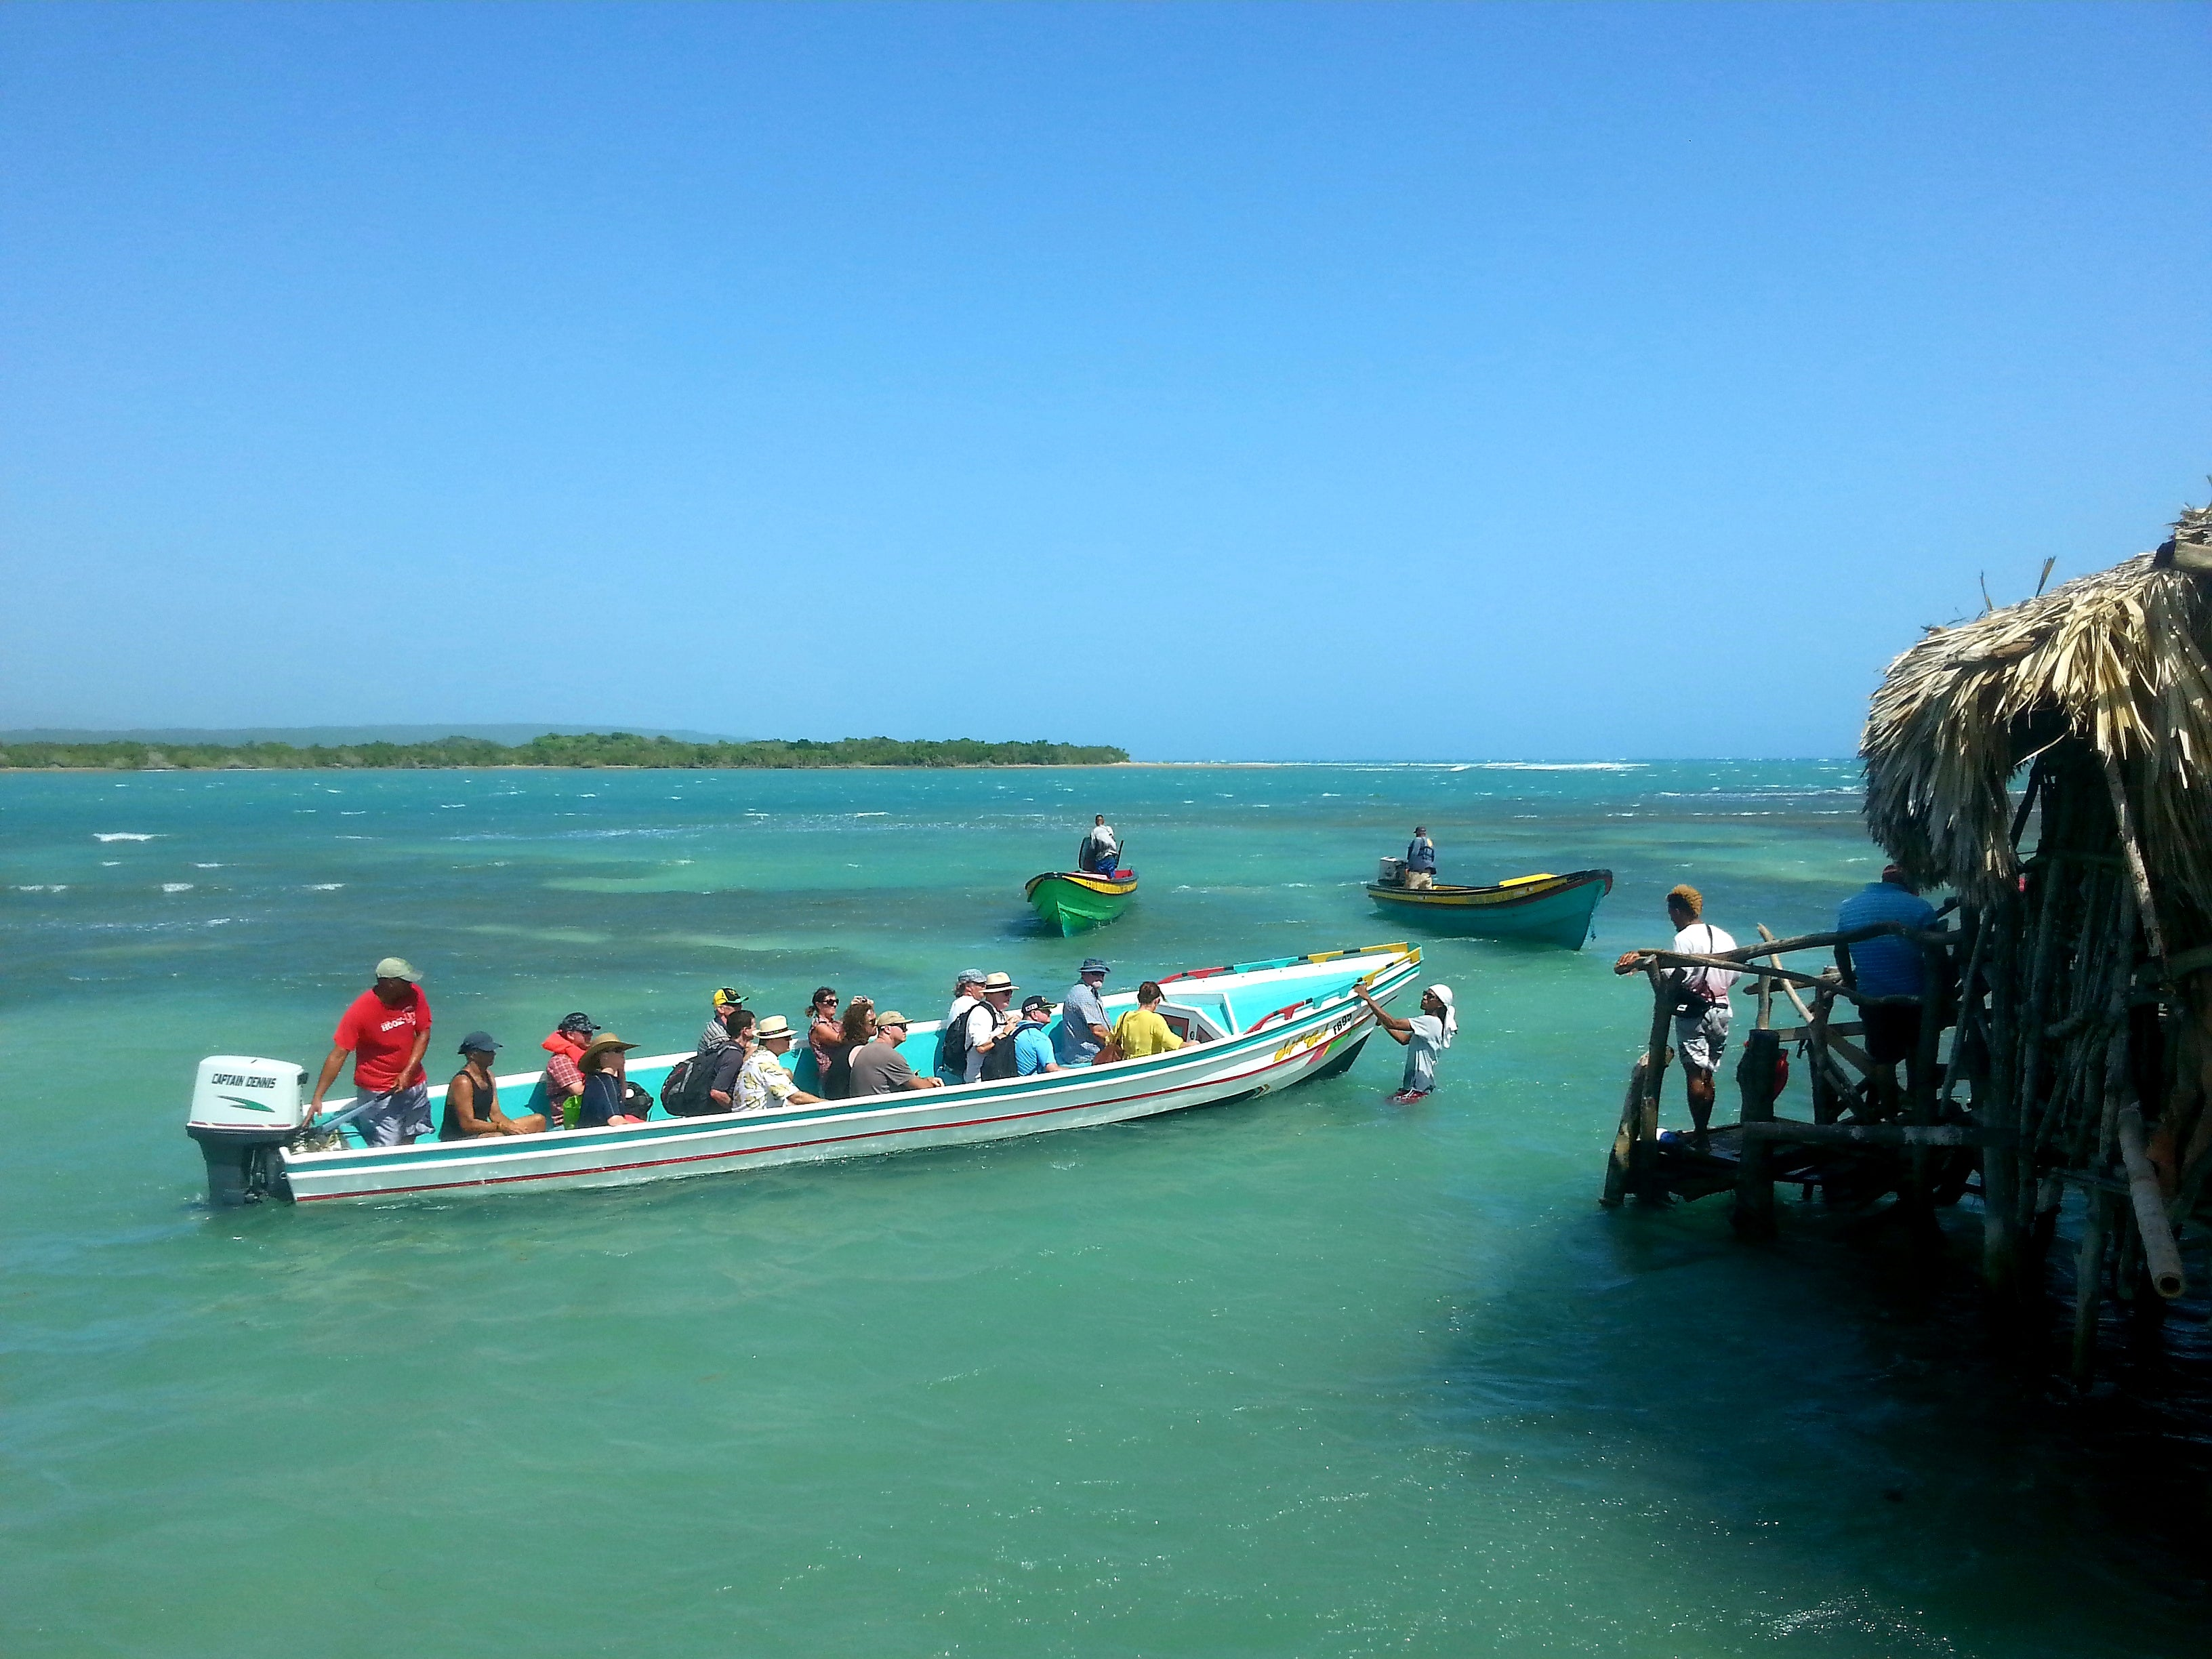 Australian Cricket Tours - You Need A Boat To Reach Floyd's Pelican Bar In Jamaica